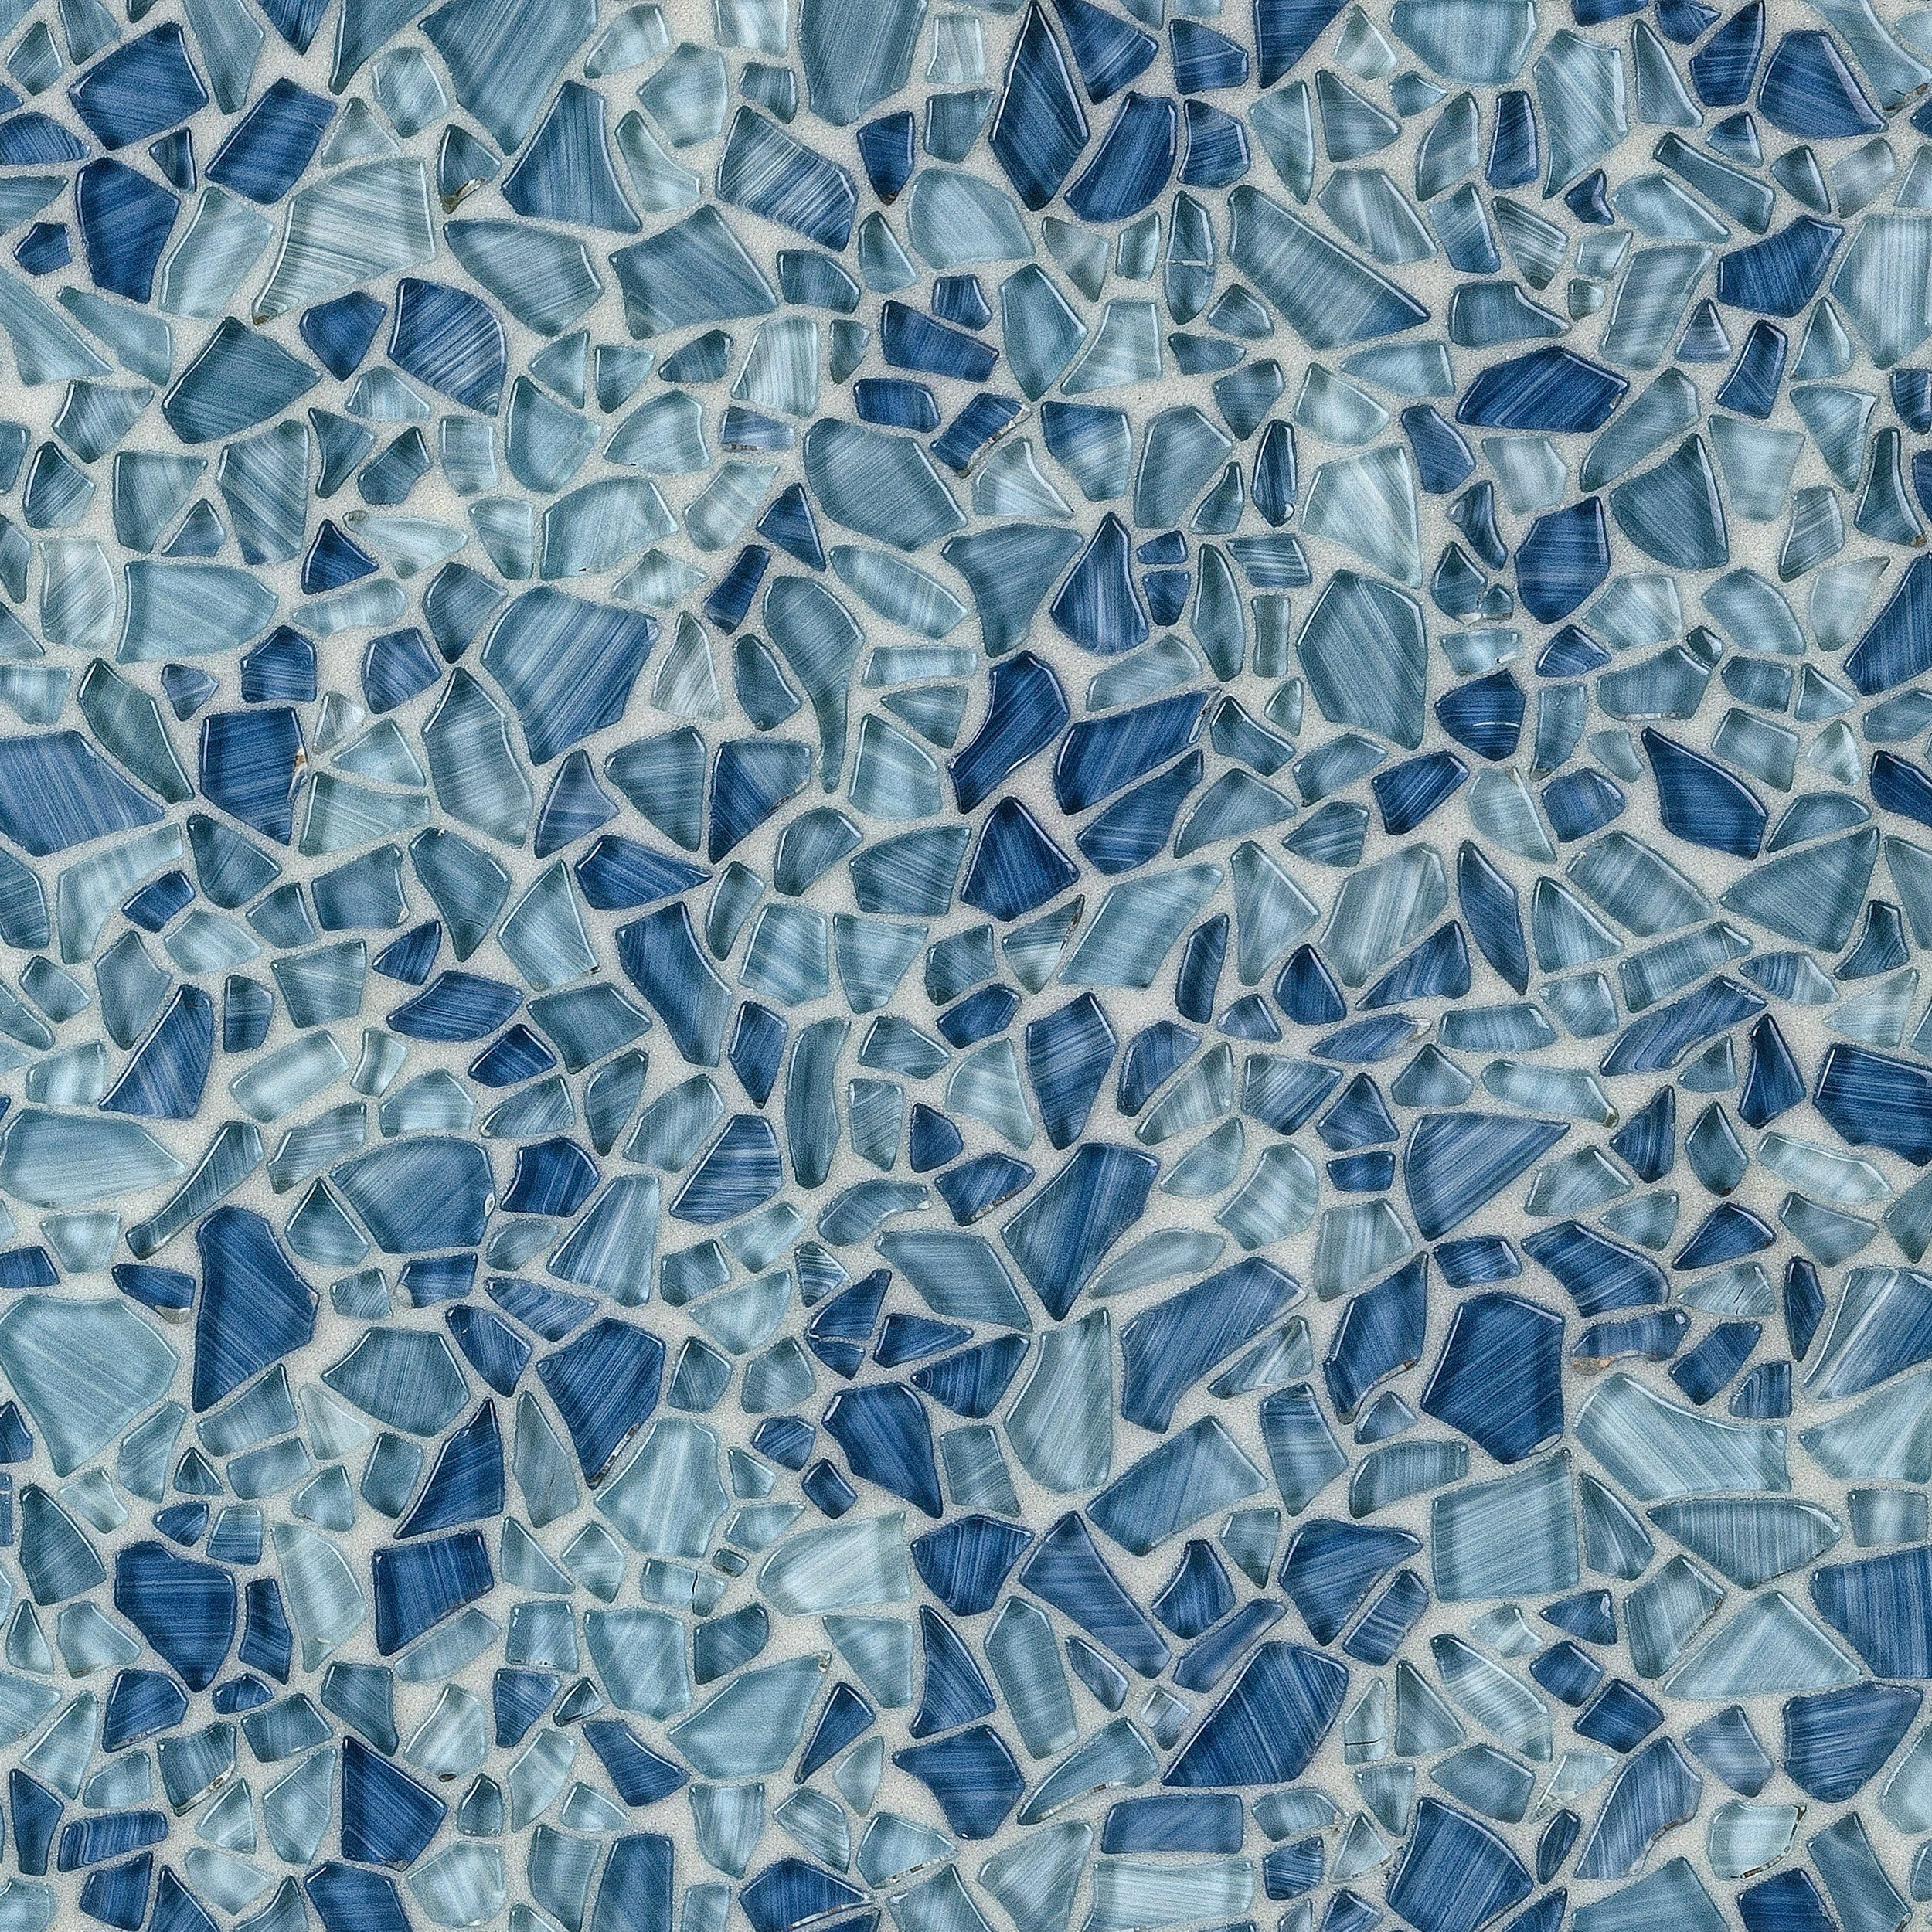 Paradise Bay Pebble Glass Mosaic In 2019 Kitchen Wall Tiles Kitchen Tiles Mosaic Tiles